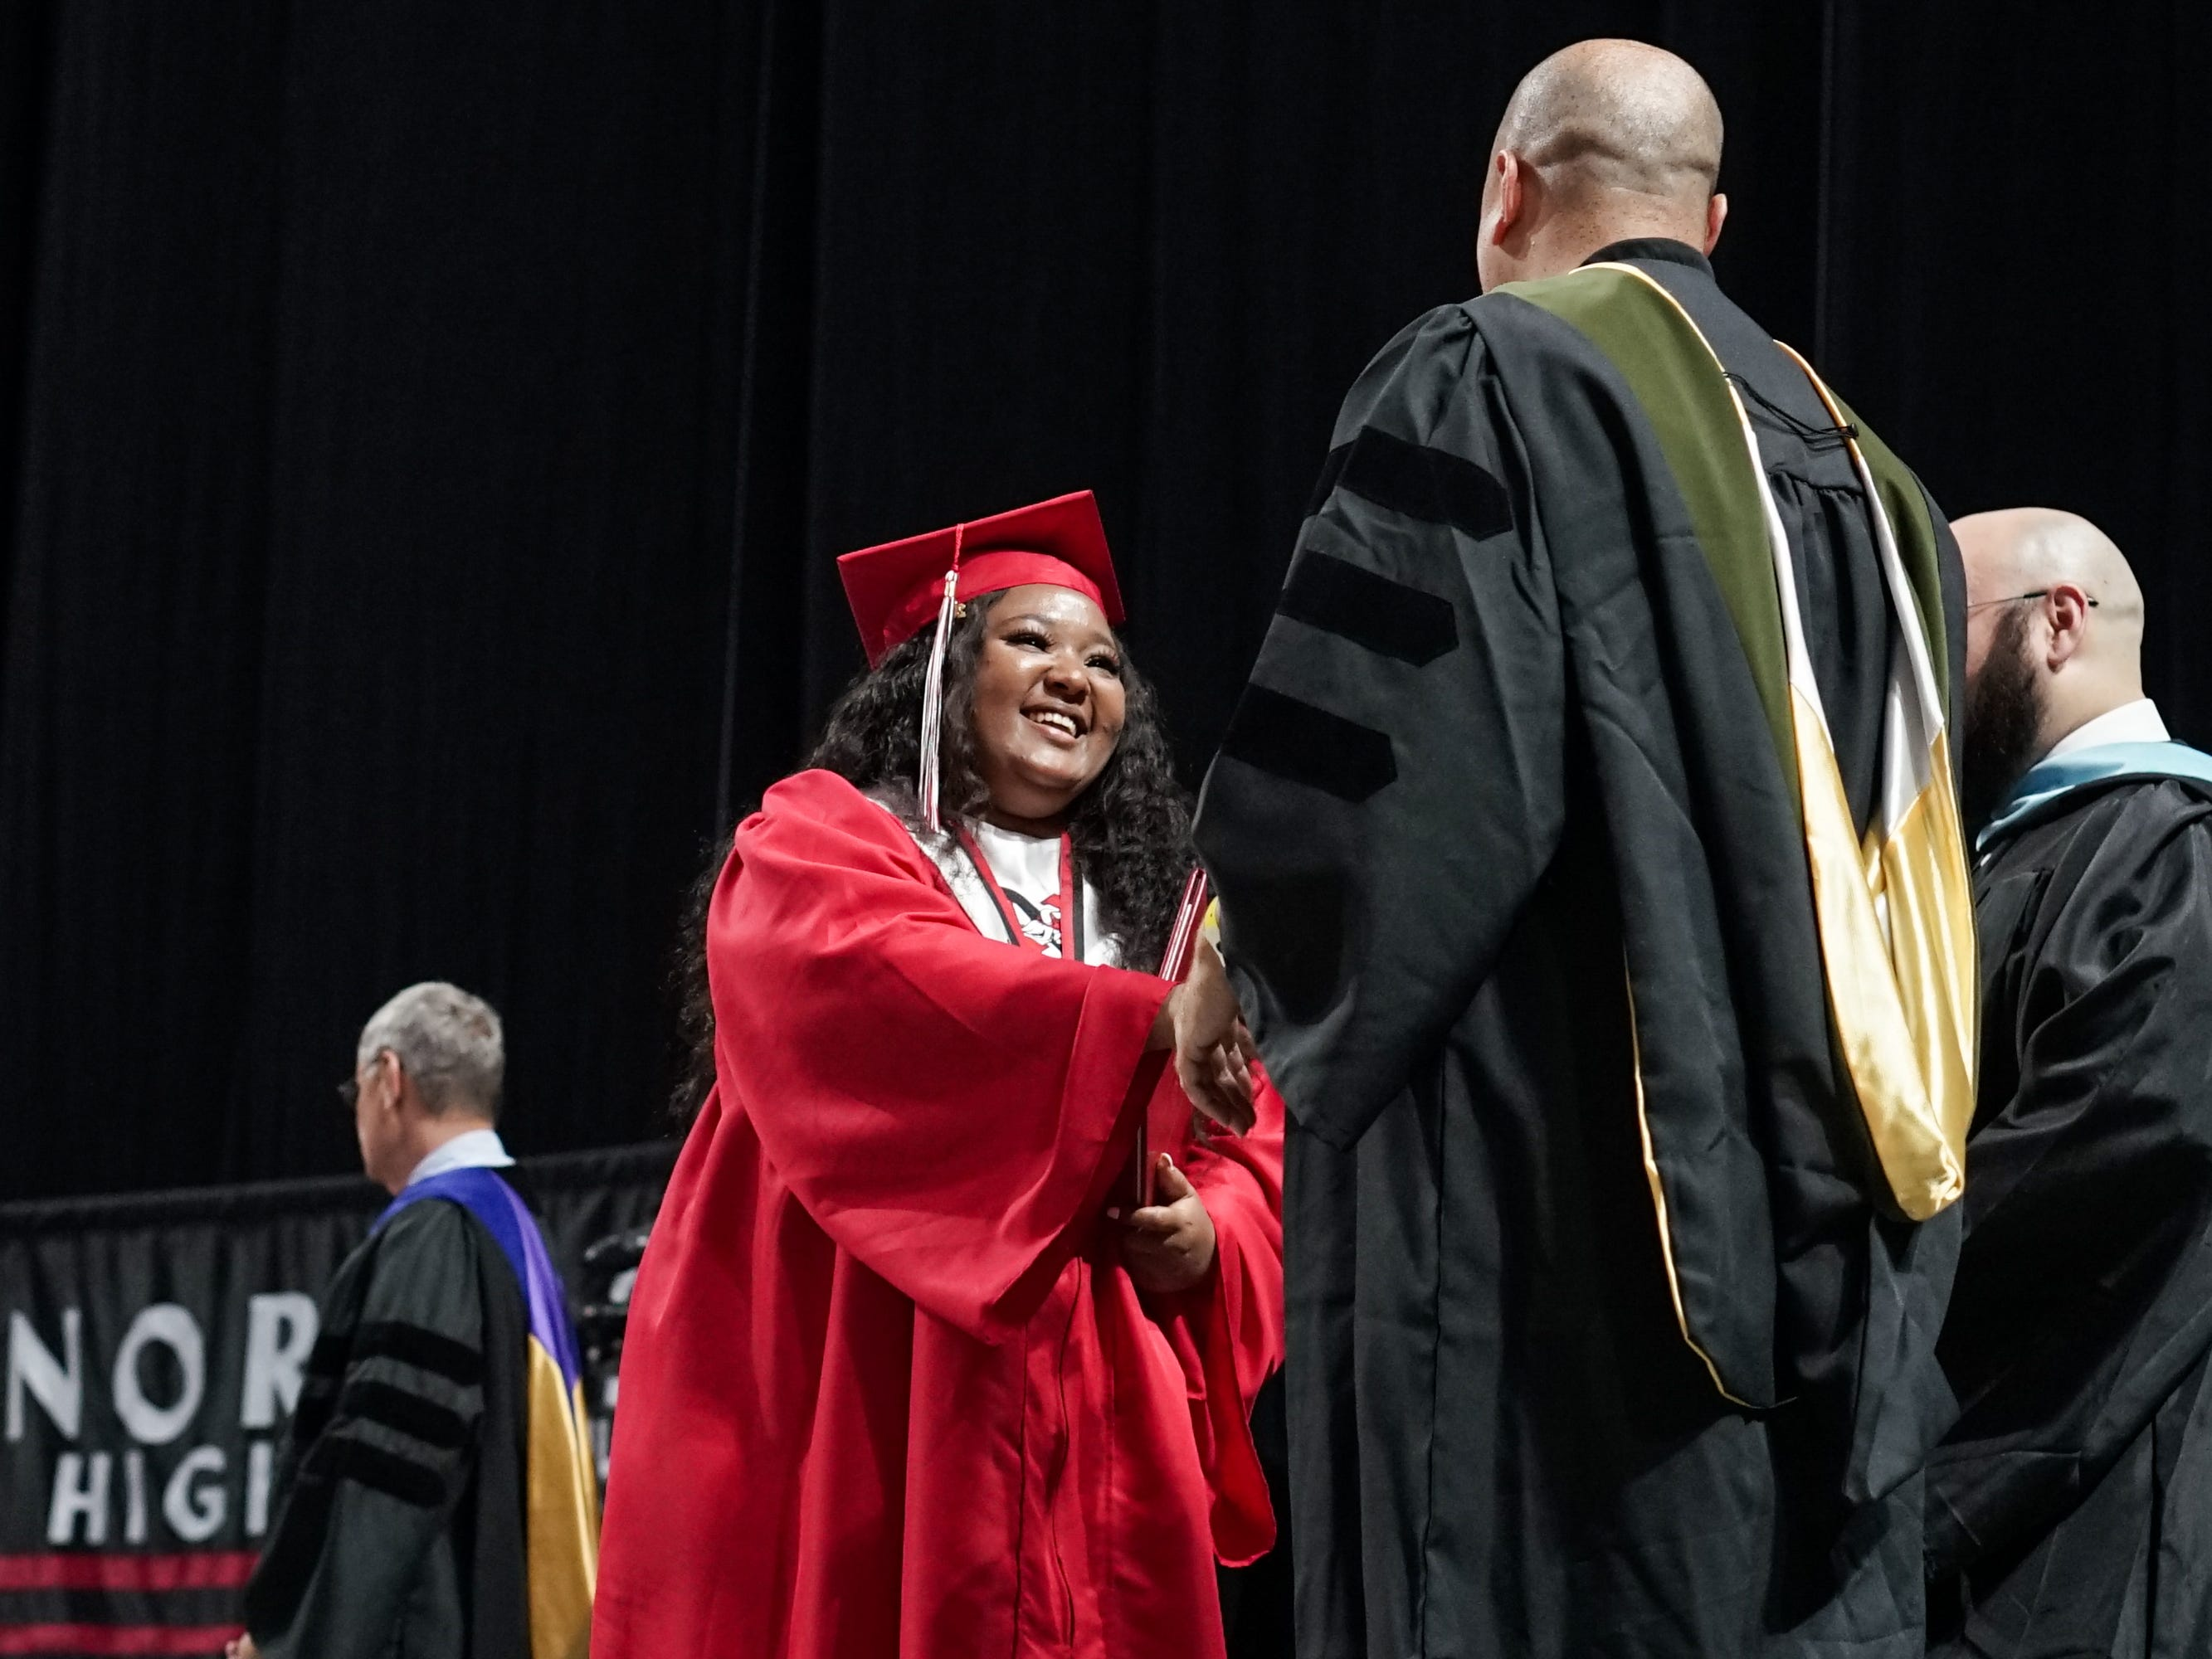 Northside High School holds its graduation ceremony at the Cajundome in Lafayette Friday, May 10, 2019.